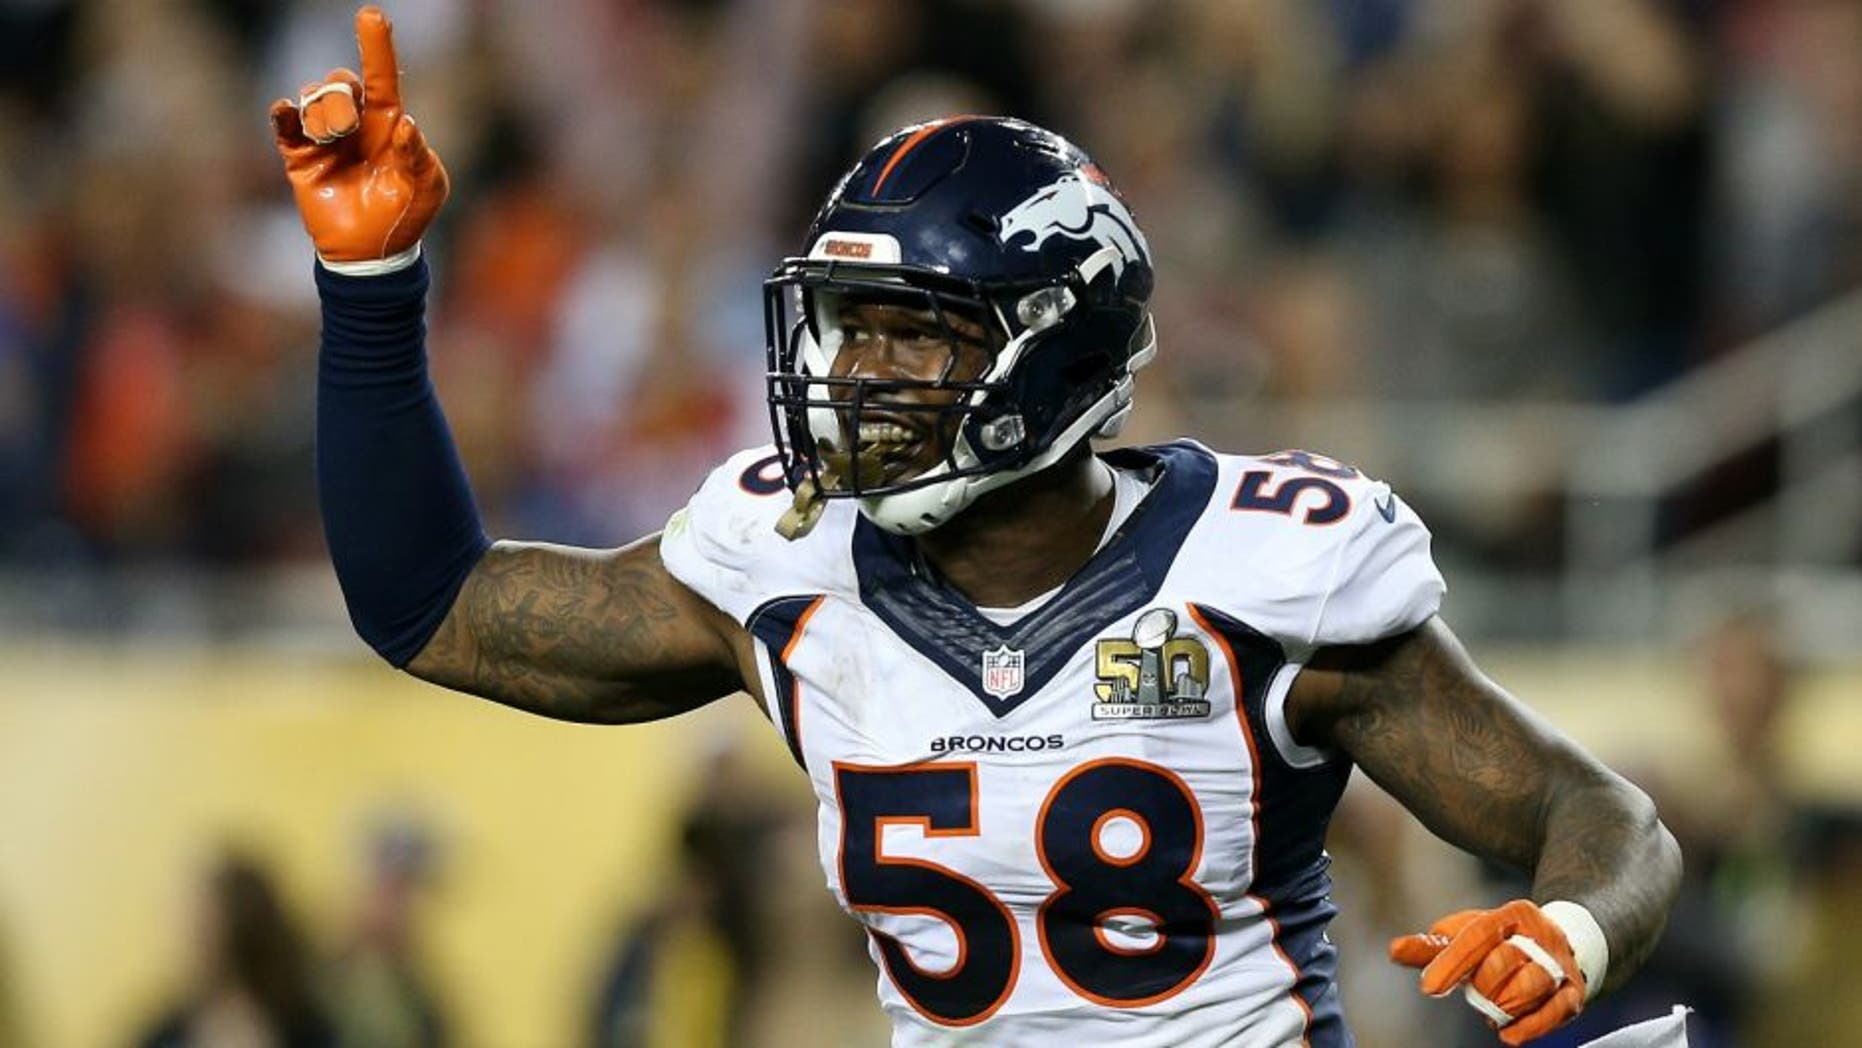 during Super Bowl 50 at Levi's Stadium on February 7, 2016 in Santa Clara, California.,SANTA CLARA, CA - FEBRUARY 07: Von Miller #58 of the Denver Broncos reacts after a play against the Carolina Panthers in the fourth quarter during Super Bowl 50 at Levi's Stadium on February 7, 2016 in Santa Clara, California. (Photo by Patrick Smith/Getty Images)